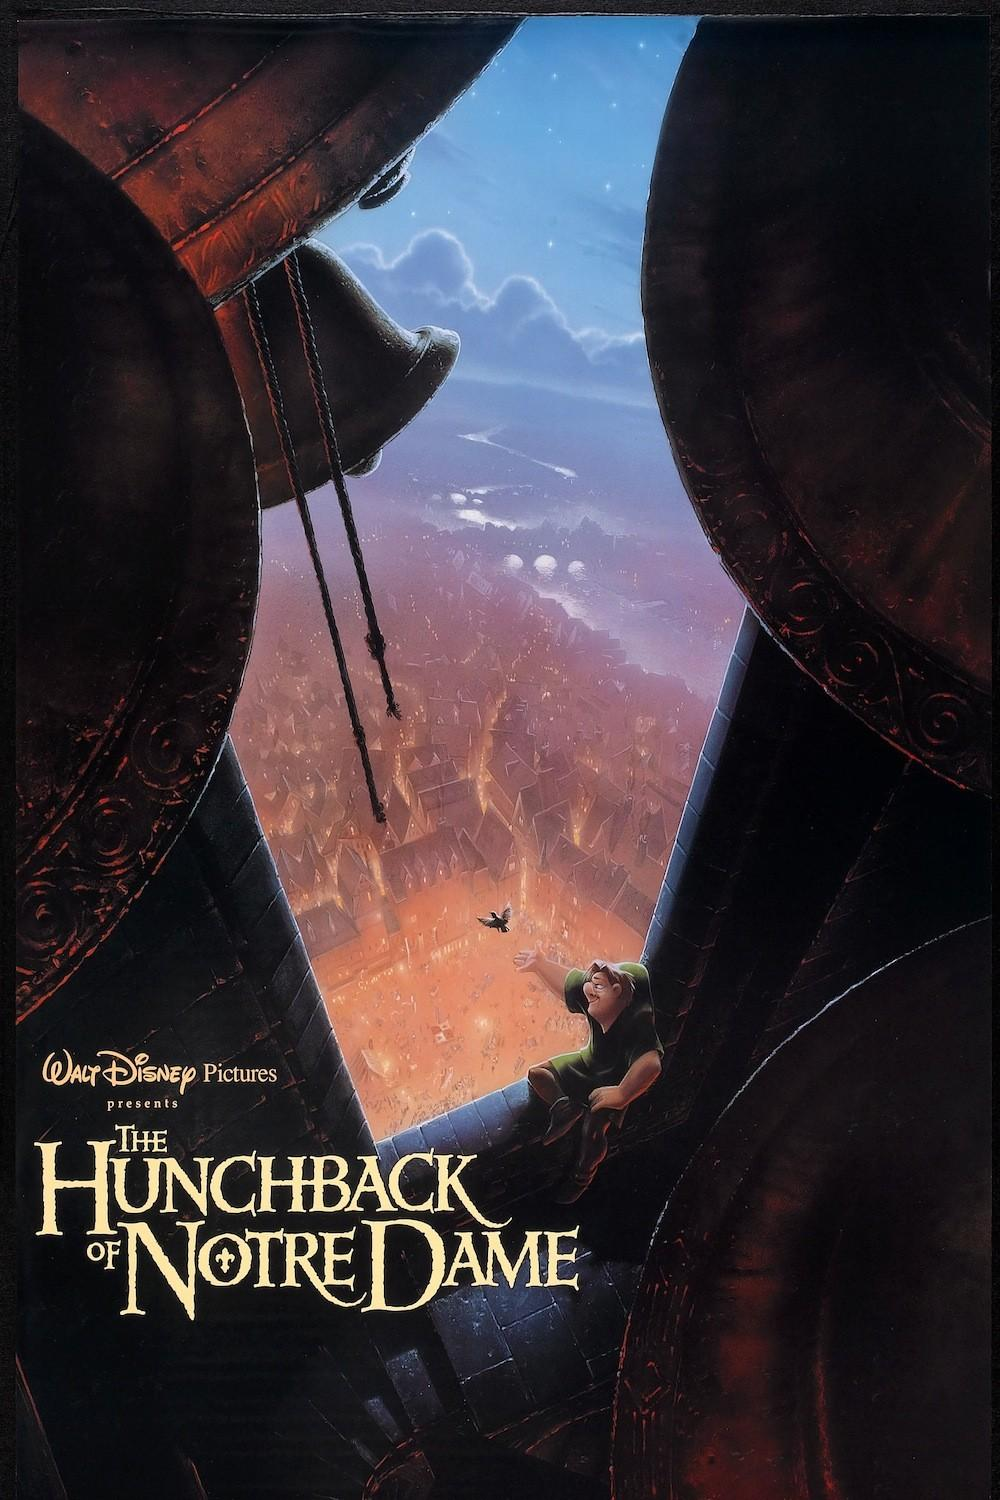 https://vignette4.wikia.nocookie.net/disney/images/a/a5/The_Hunchback_of_Notre_Dame-_1996.jpg/revision/latest?cb=20130420022954